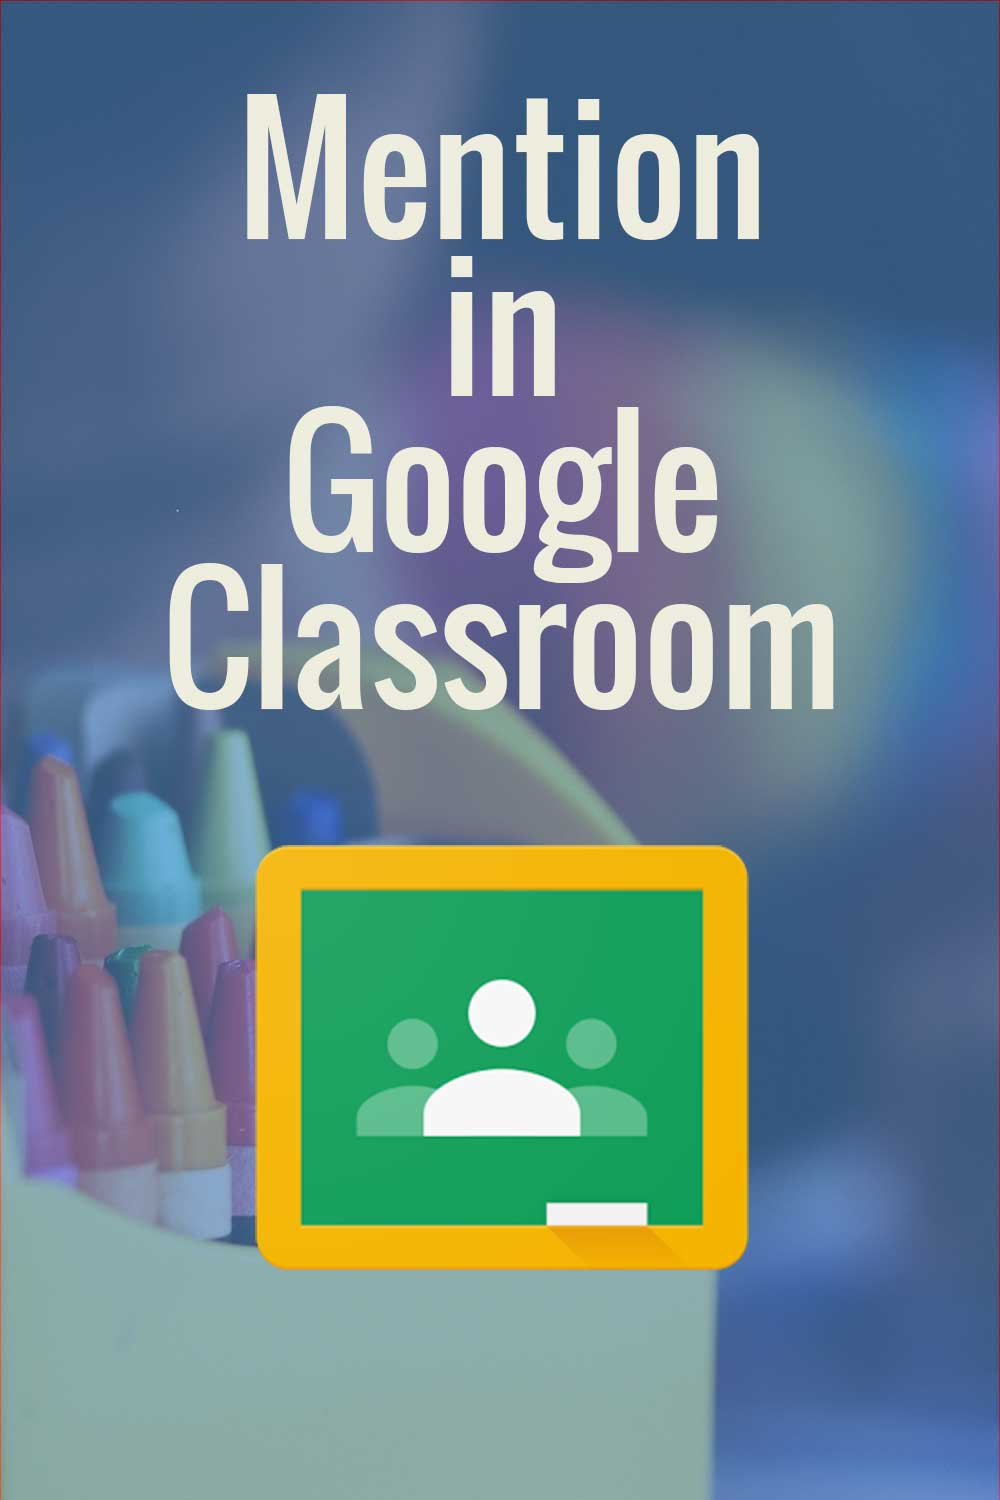 Mention in Google Classroom